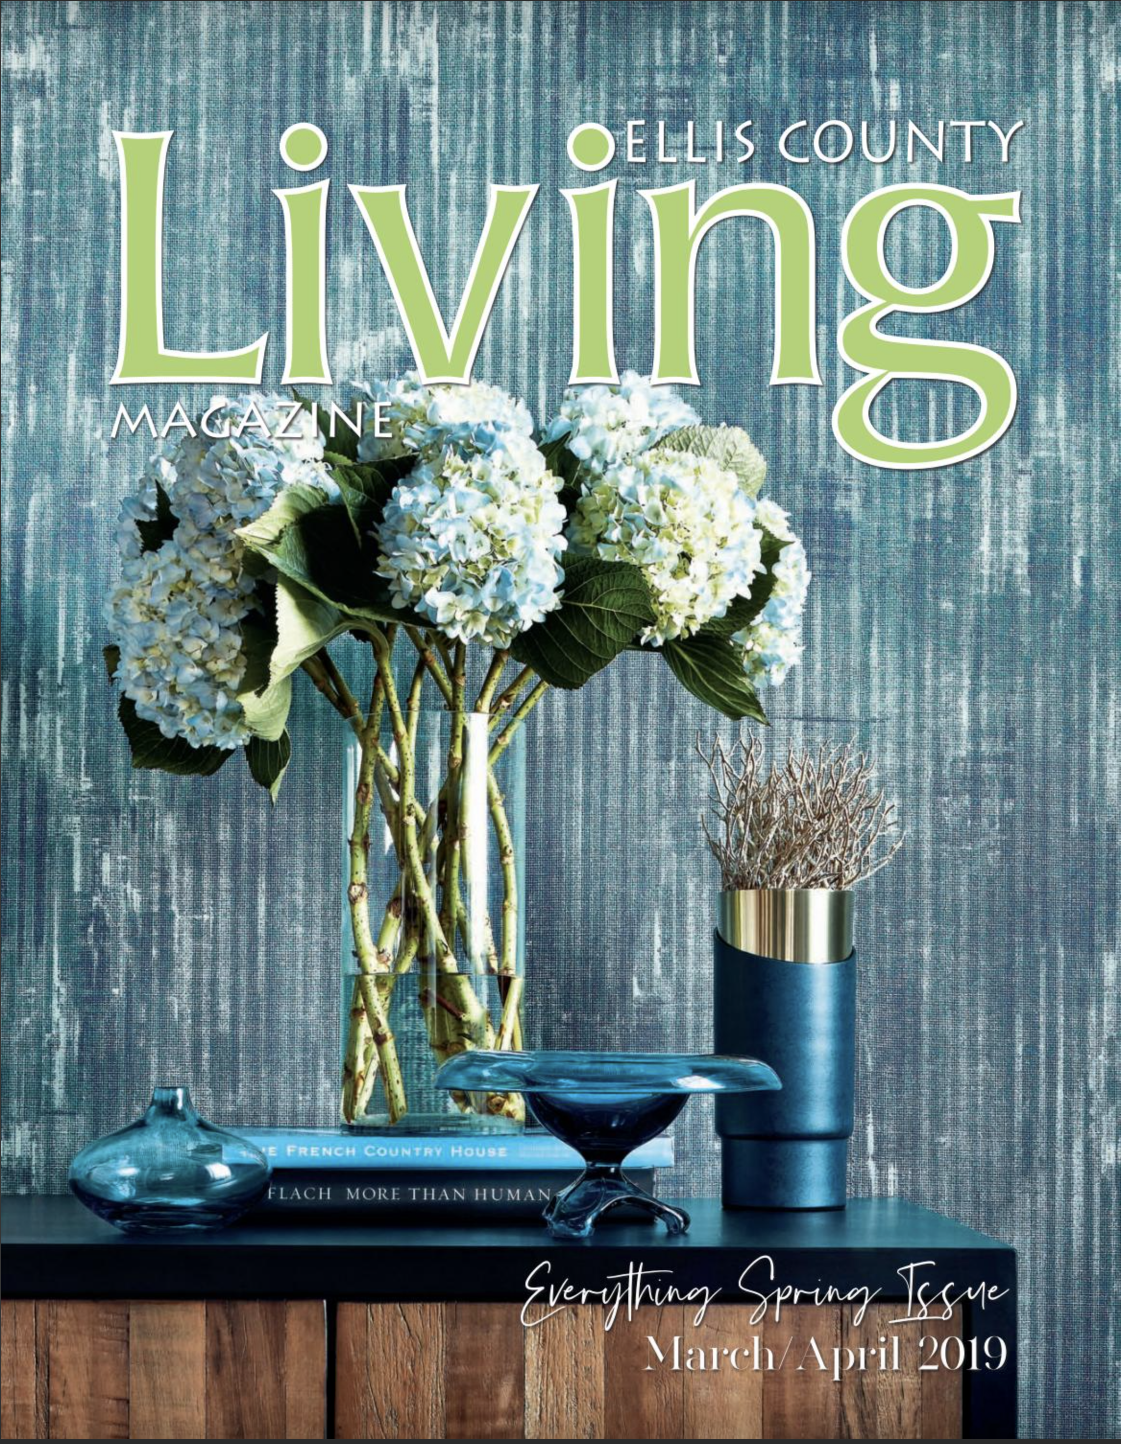 WELCOME! - Everything Spring 2019Click on the box below to read the latest issue!